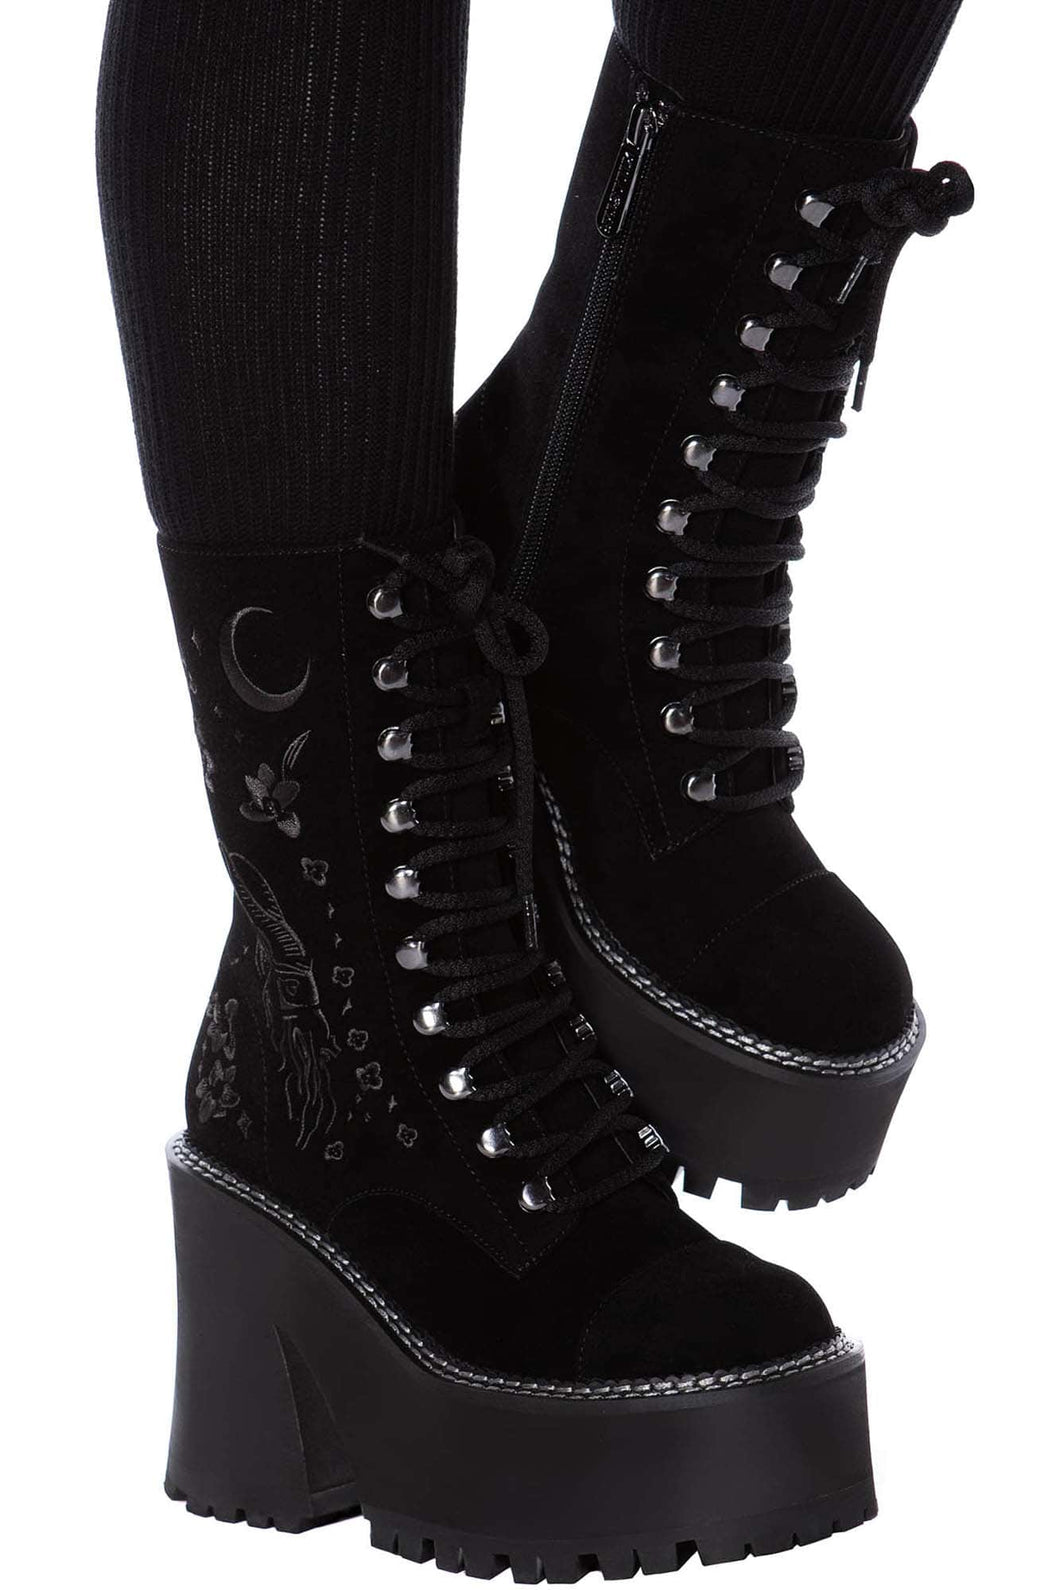 Killstar Luci-Fairy Boots - Kate's Clothing